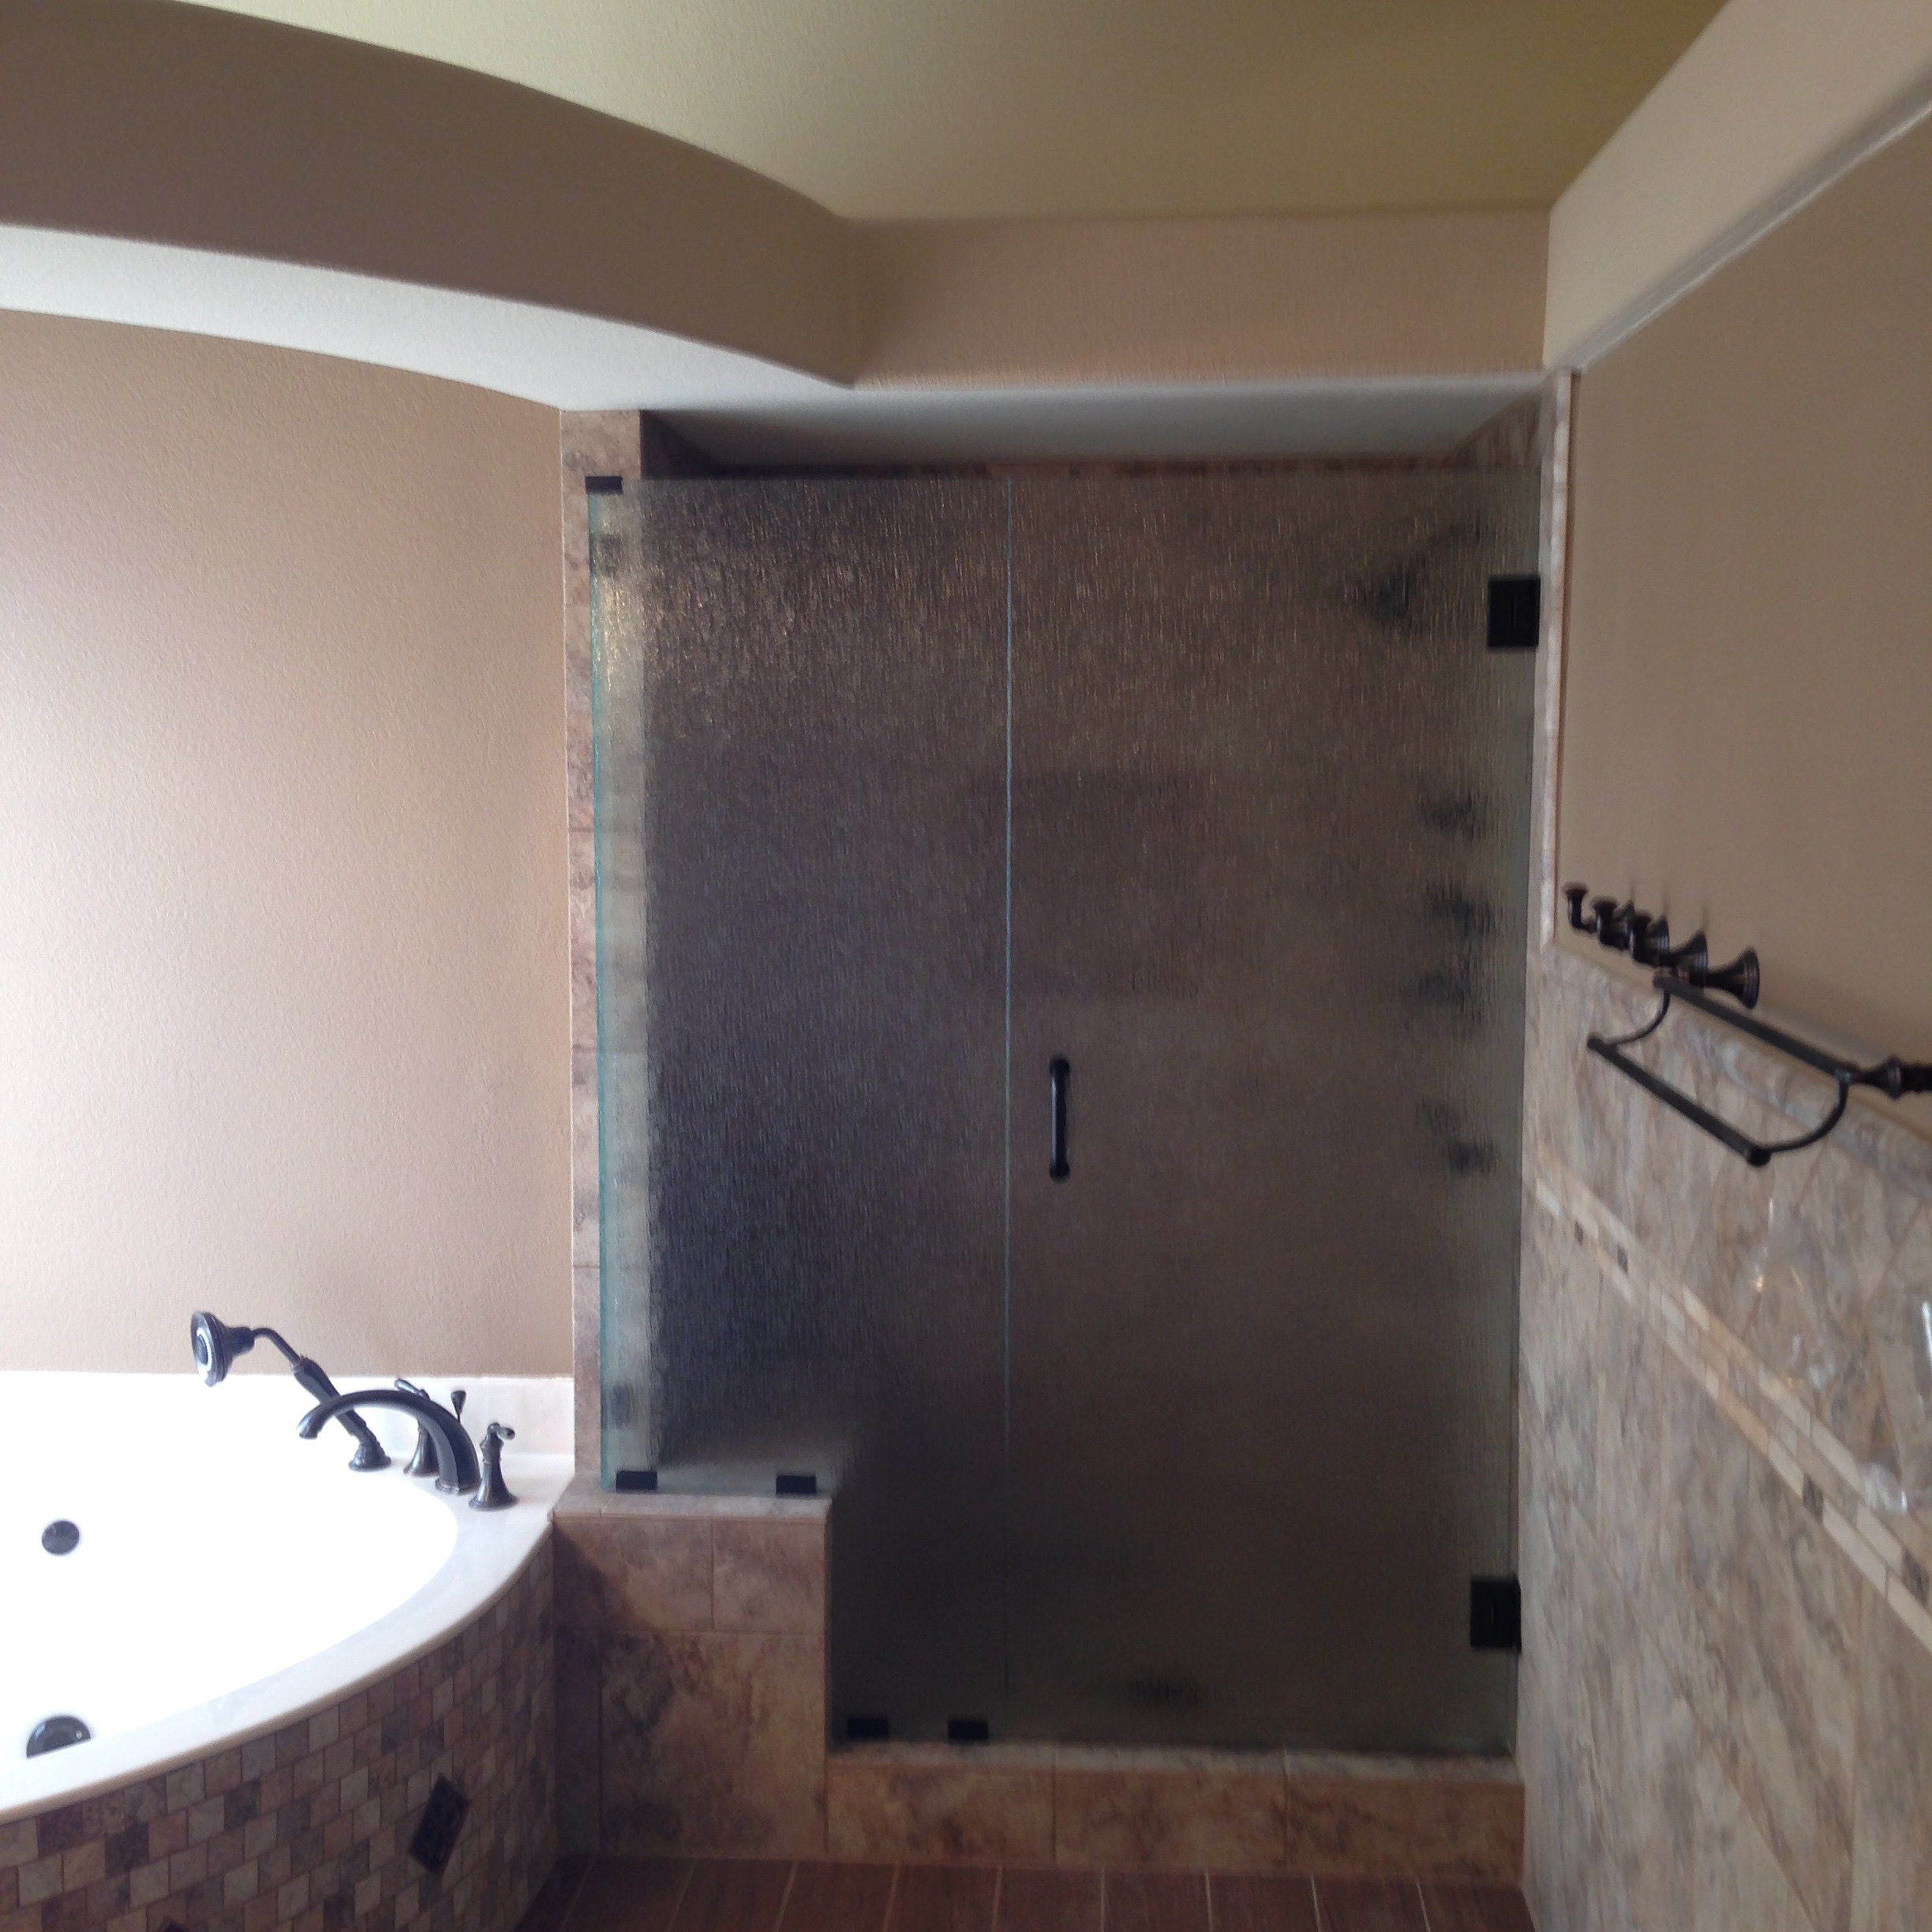 las bathroom nv also plus with tile conjunction vanities of remodel vegas size contractor cost in full